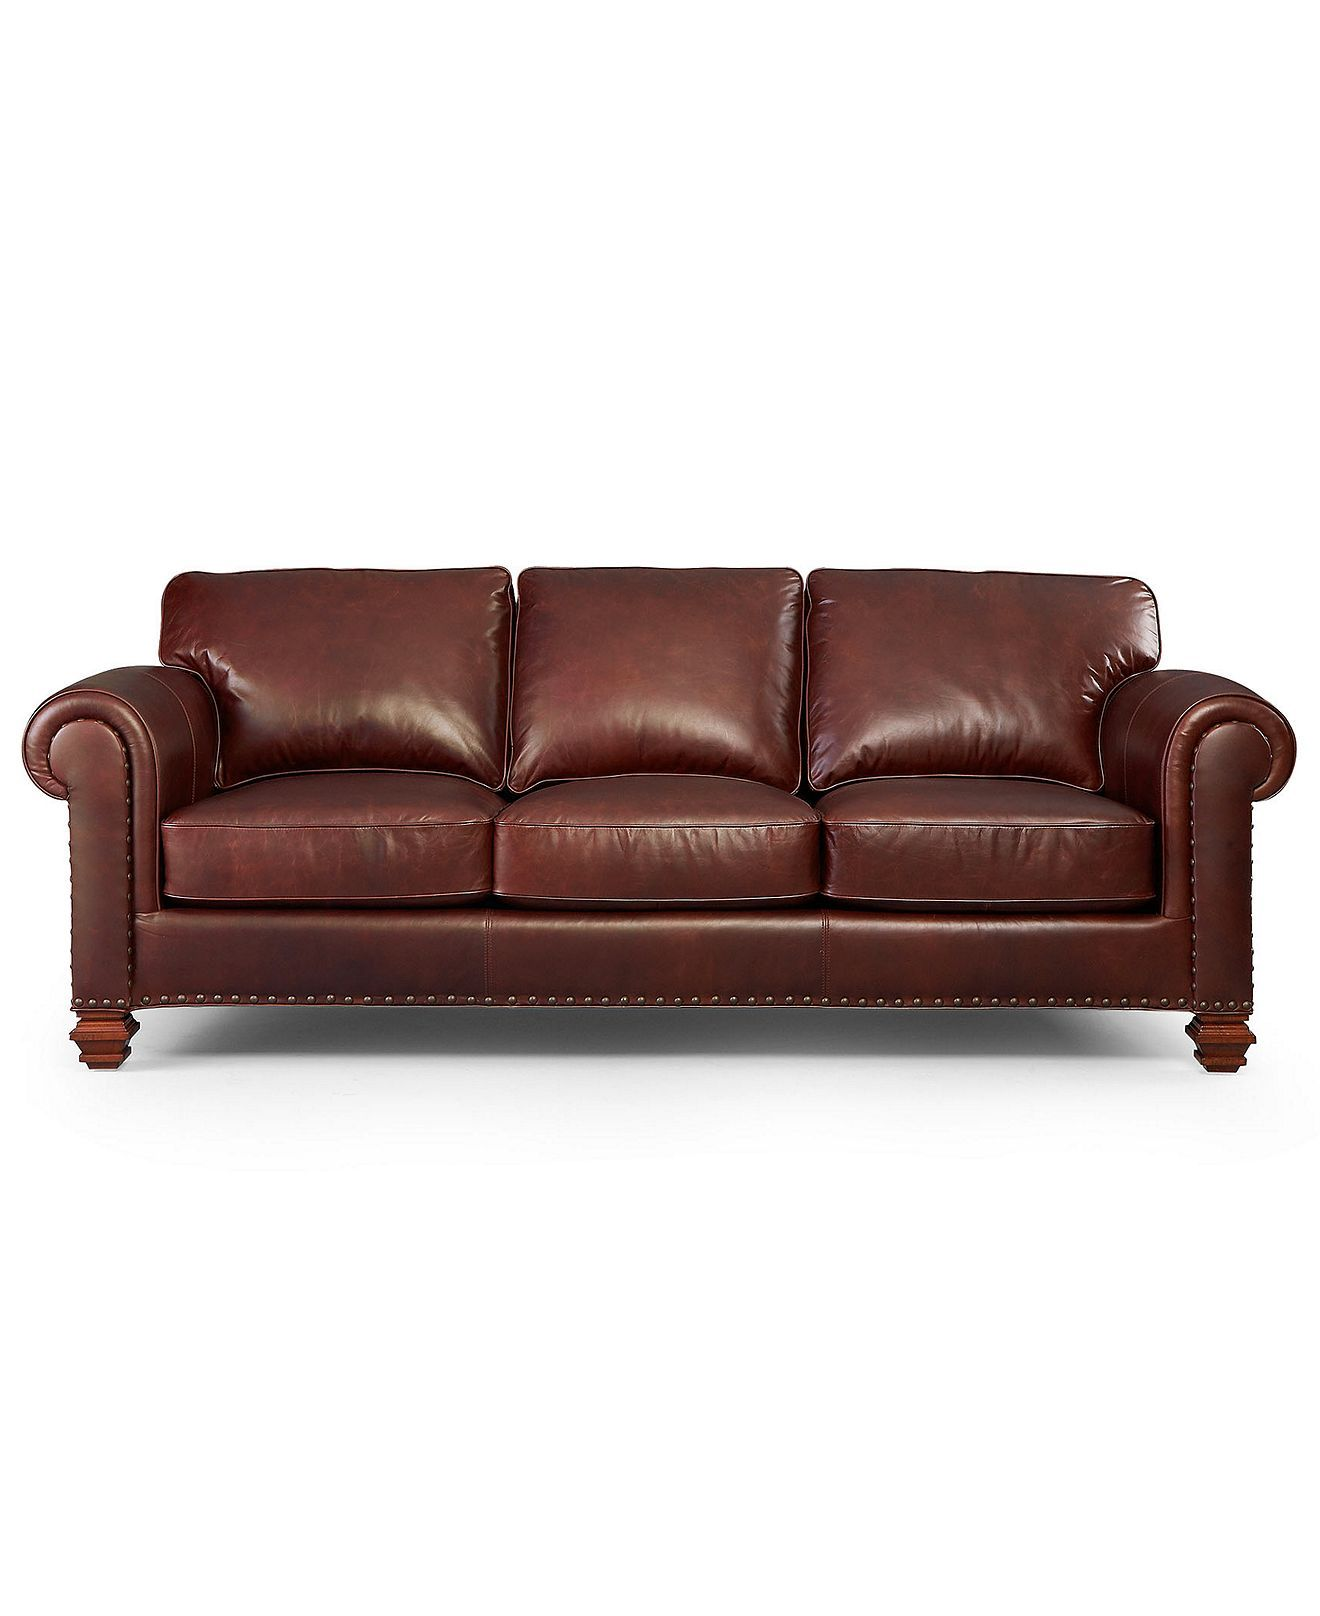 Chesterfield Sectional Sofa Lauren Ralph Lauren Leather Sofa Stanmore Lauren Ralph Lauren